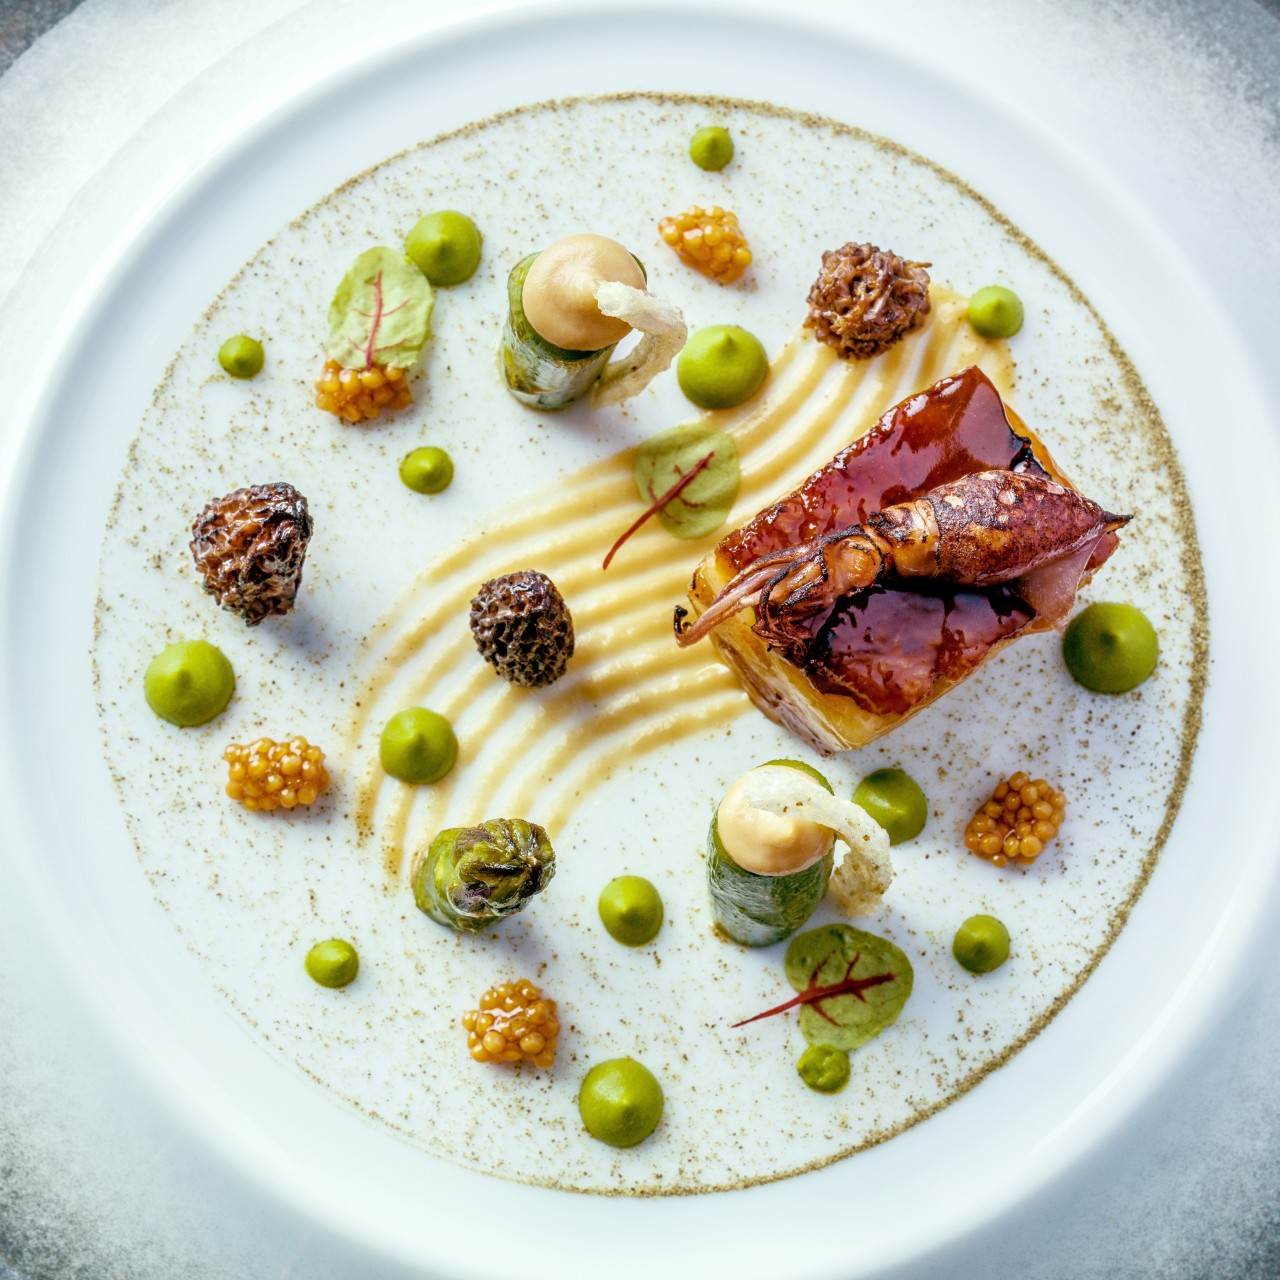 8 places to eat in Hong Kong this February: from Simon